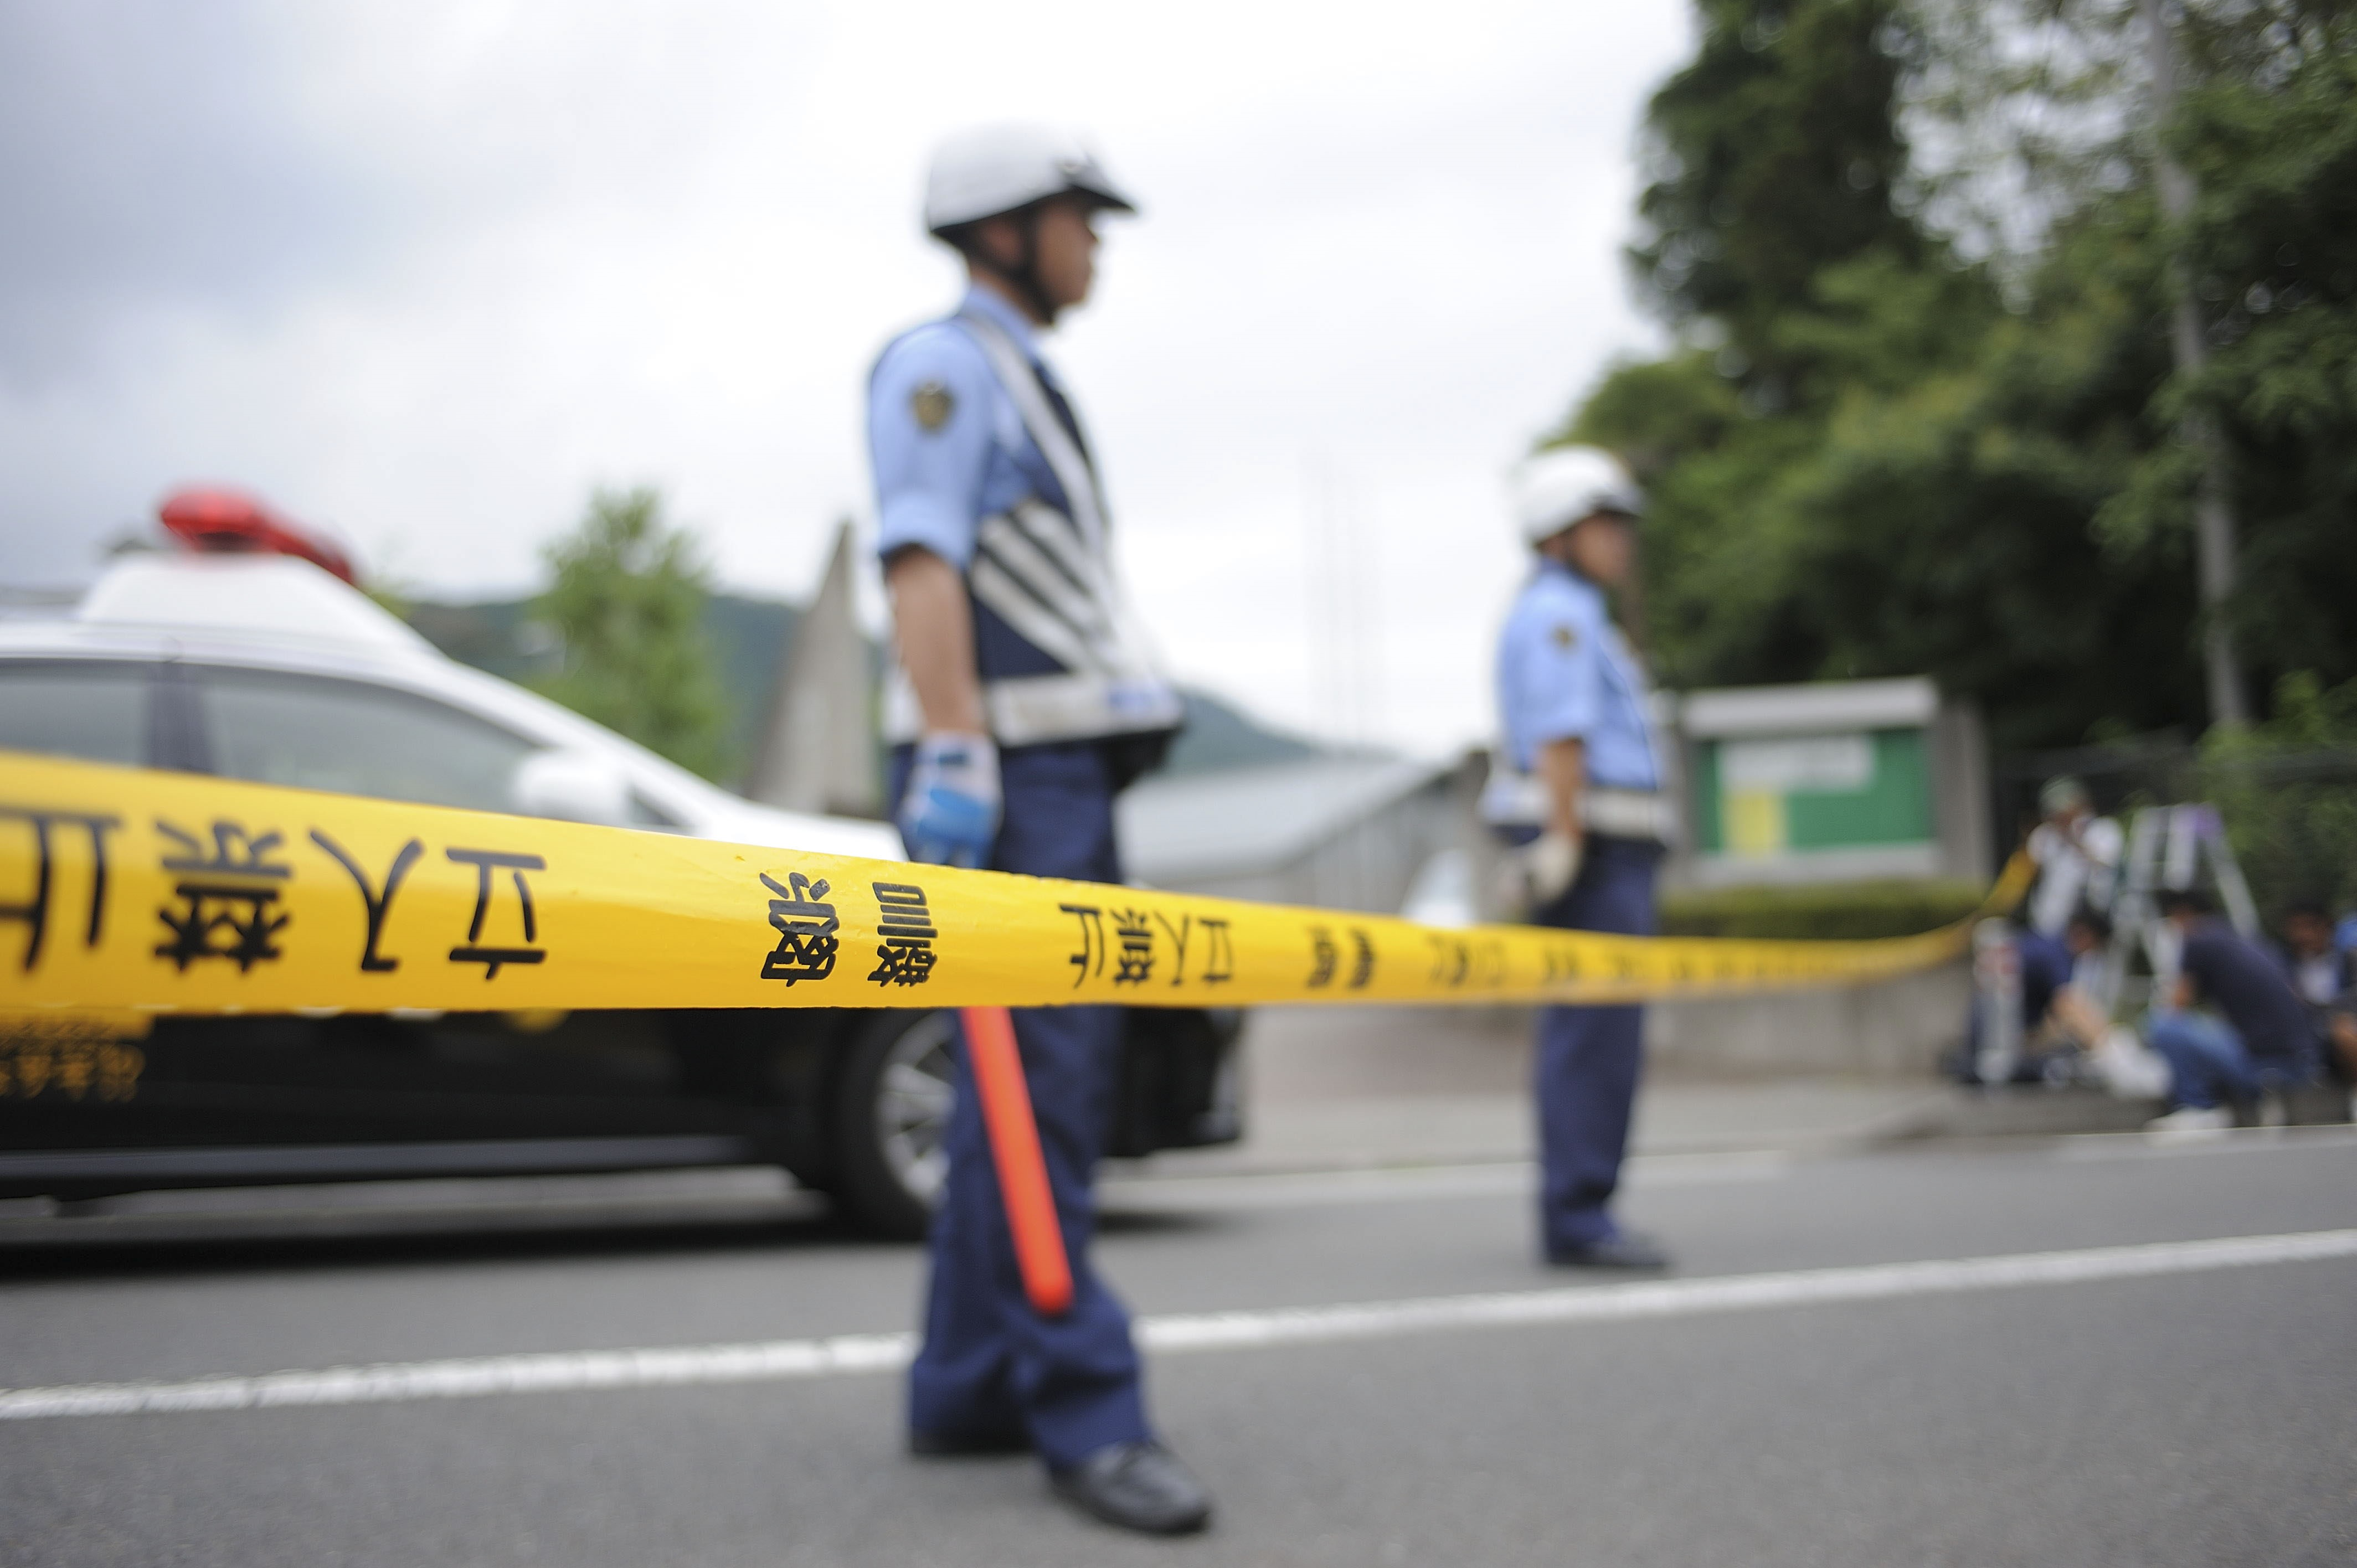 Police are seen on the site where Satoshi Uematsu carried out a knife attack in a residential care center on July 26, 2016, in Sagimahara city, Kanagawa Prefecture, Tokyo, Japan.